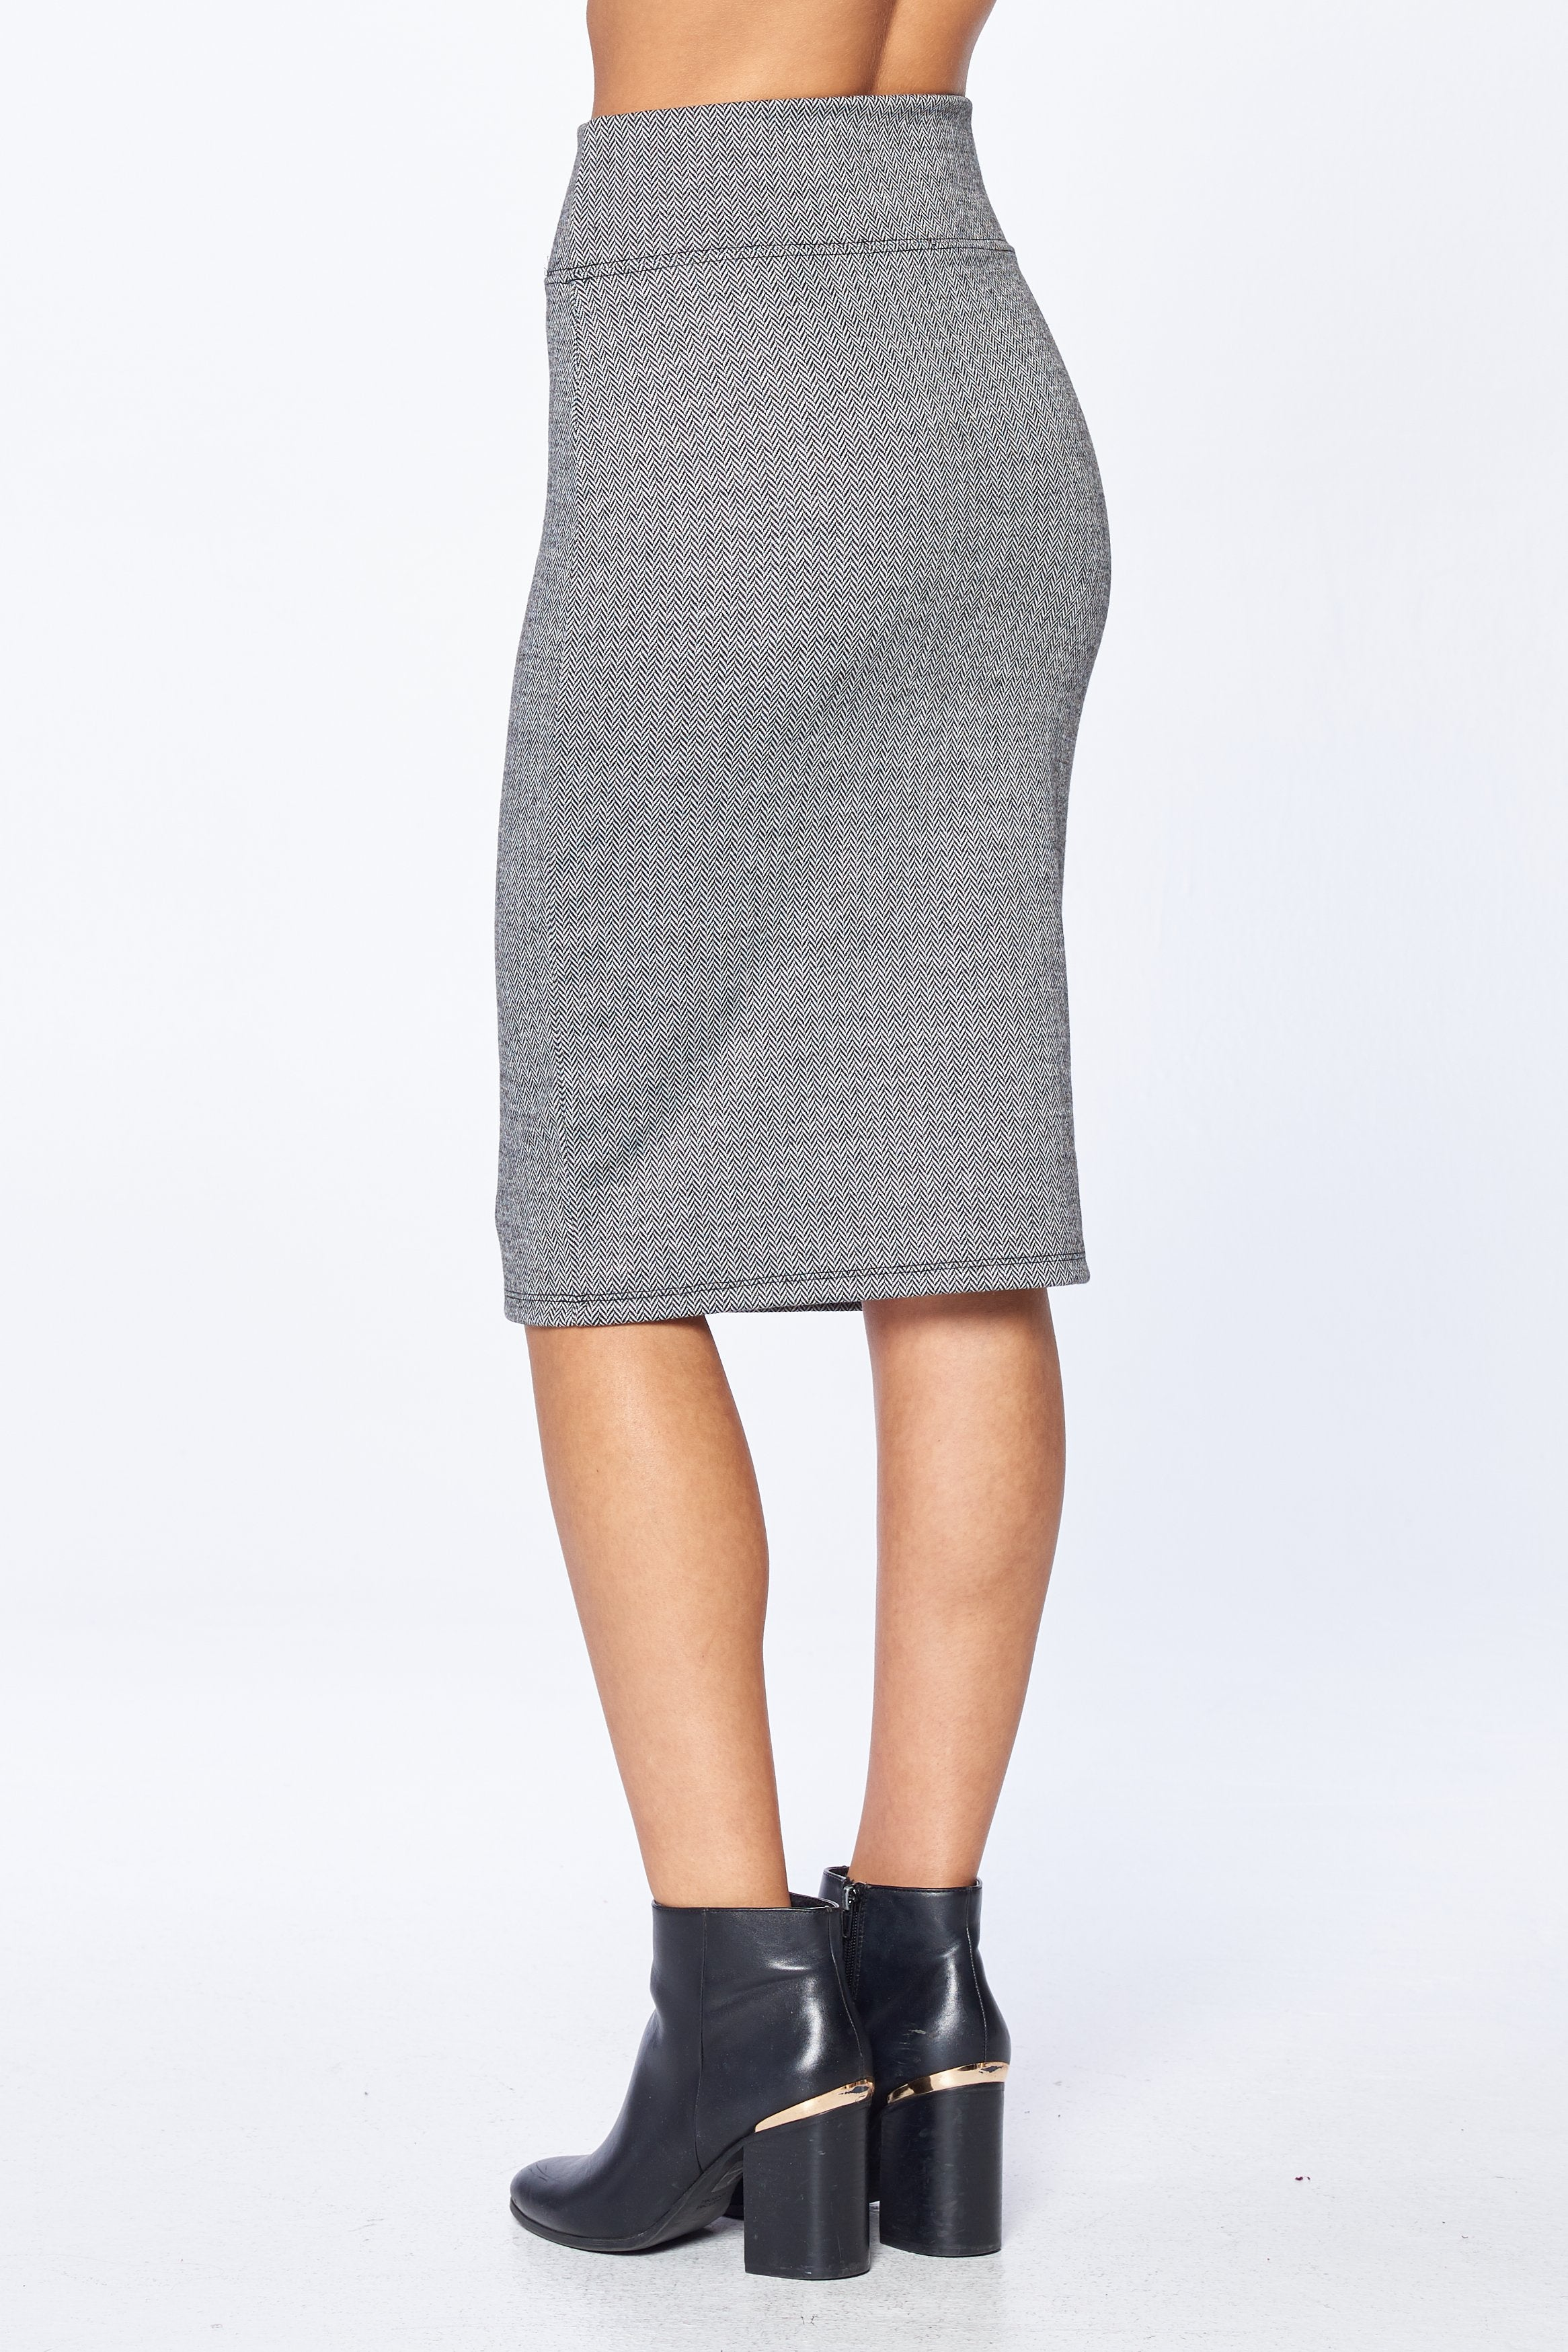 Khanomak Women's Knit Plaid Stretch High Rise Pencil Midi Skirt